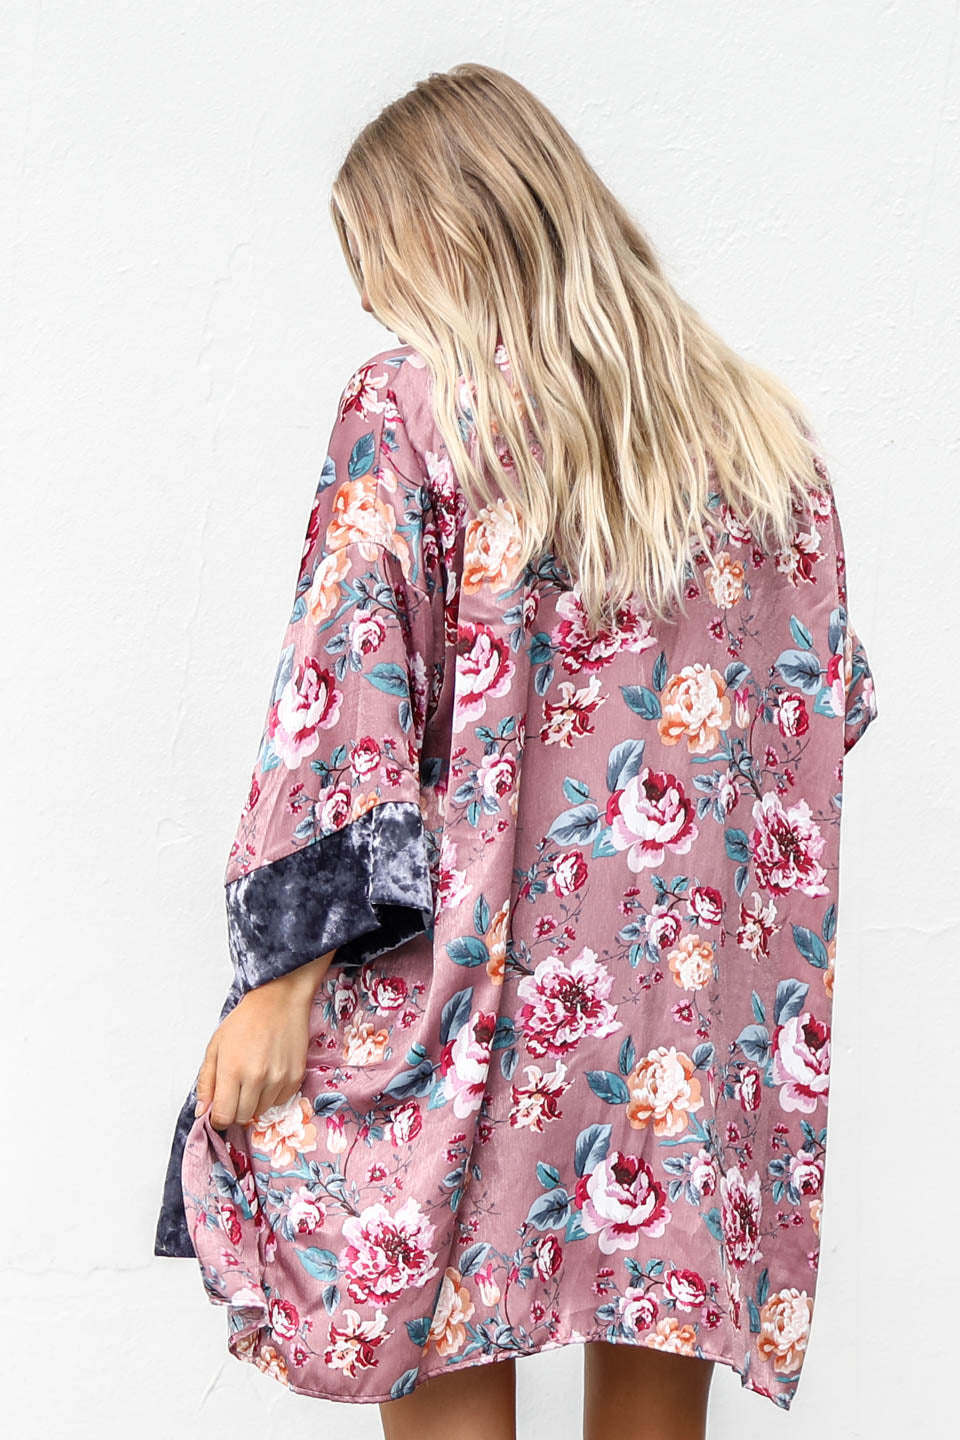 Make It Alright Floral Print Open Cardigan - Amazing Lace